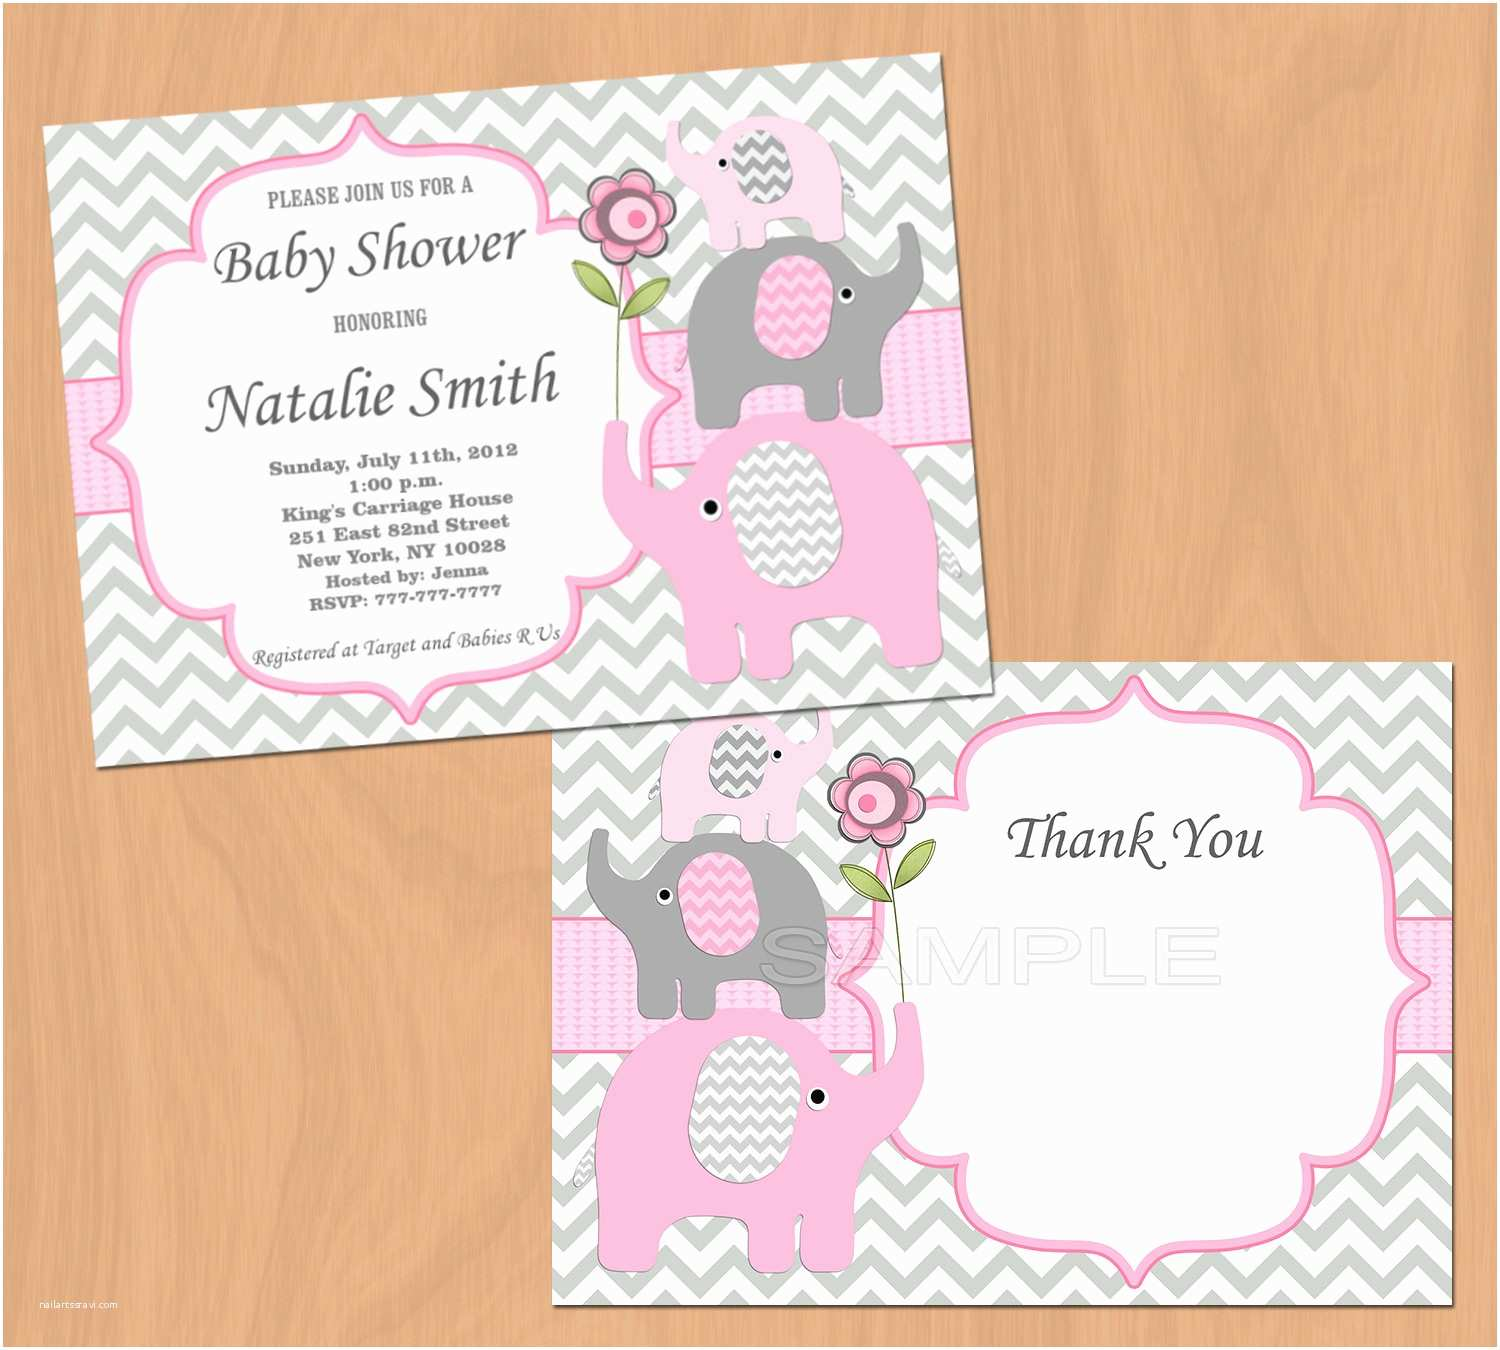 Affordable Baby Shower Invitations Cheap Baby Shower Invitations for Girls Modern Templates